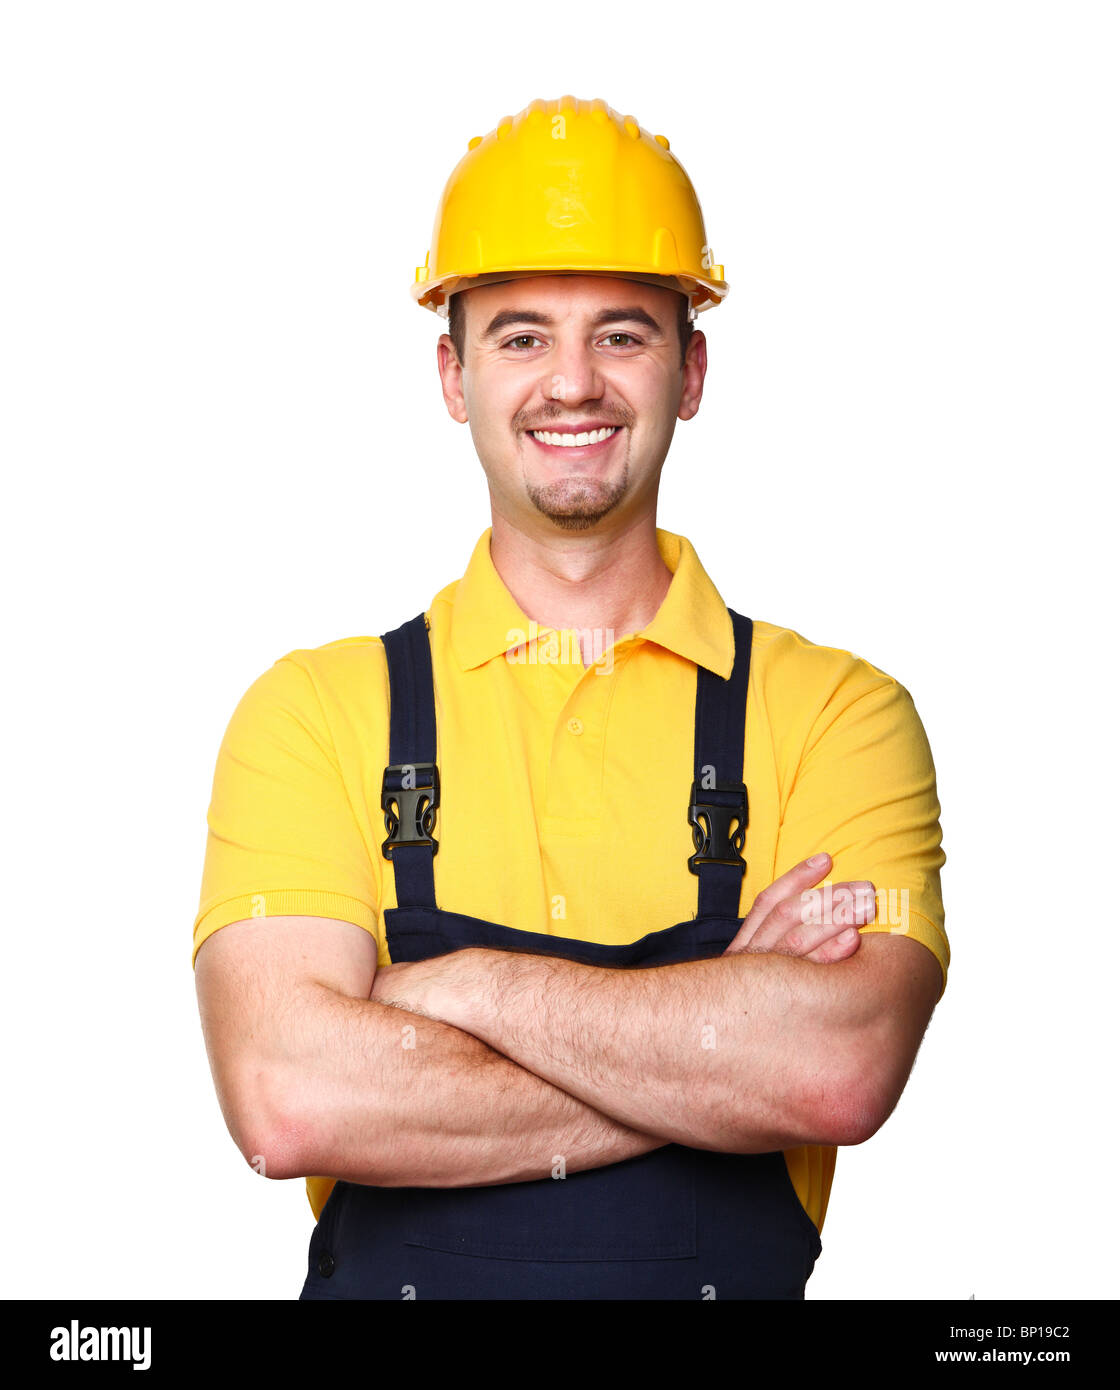 smiling manual worker isolated on white background - Stock Image